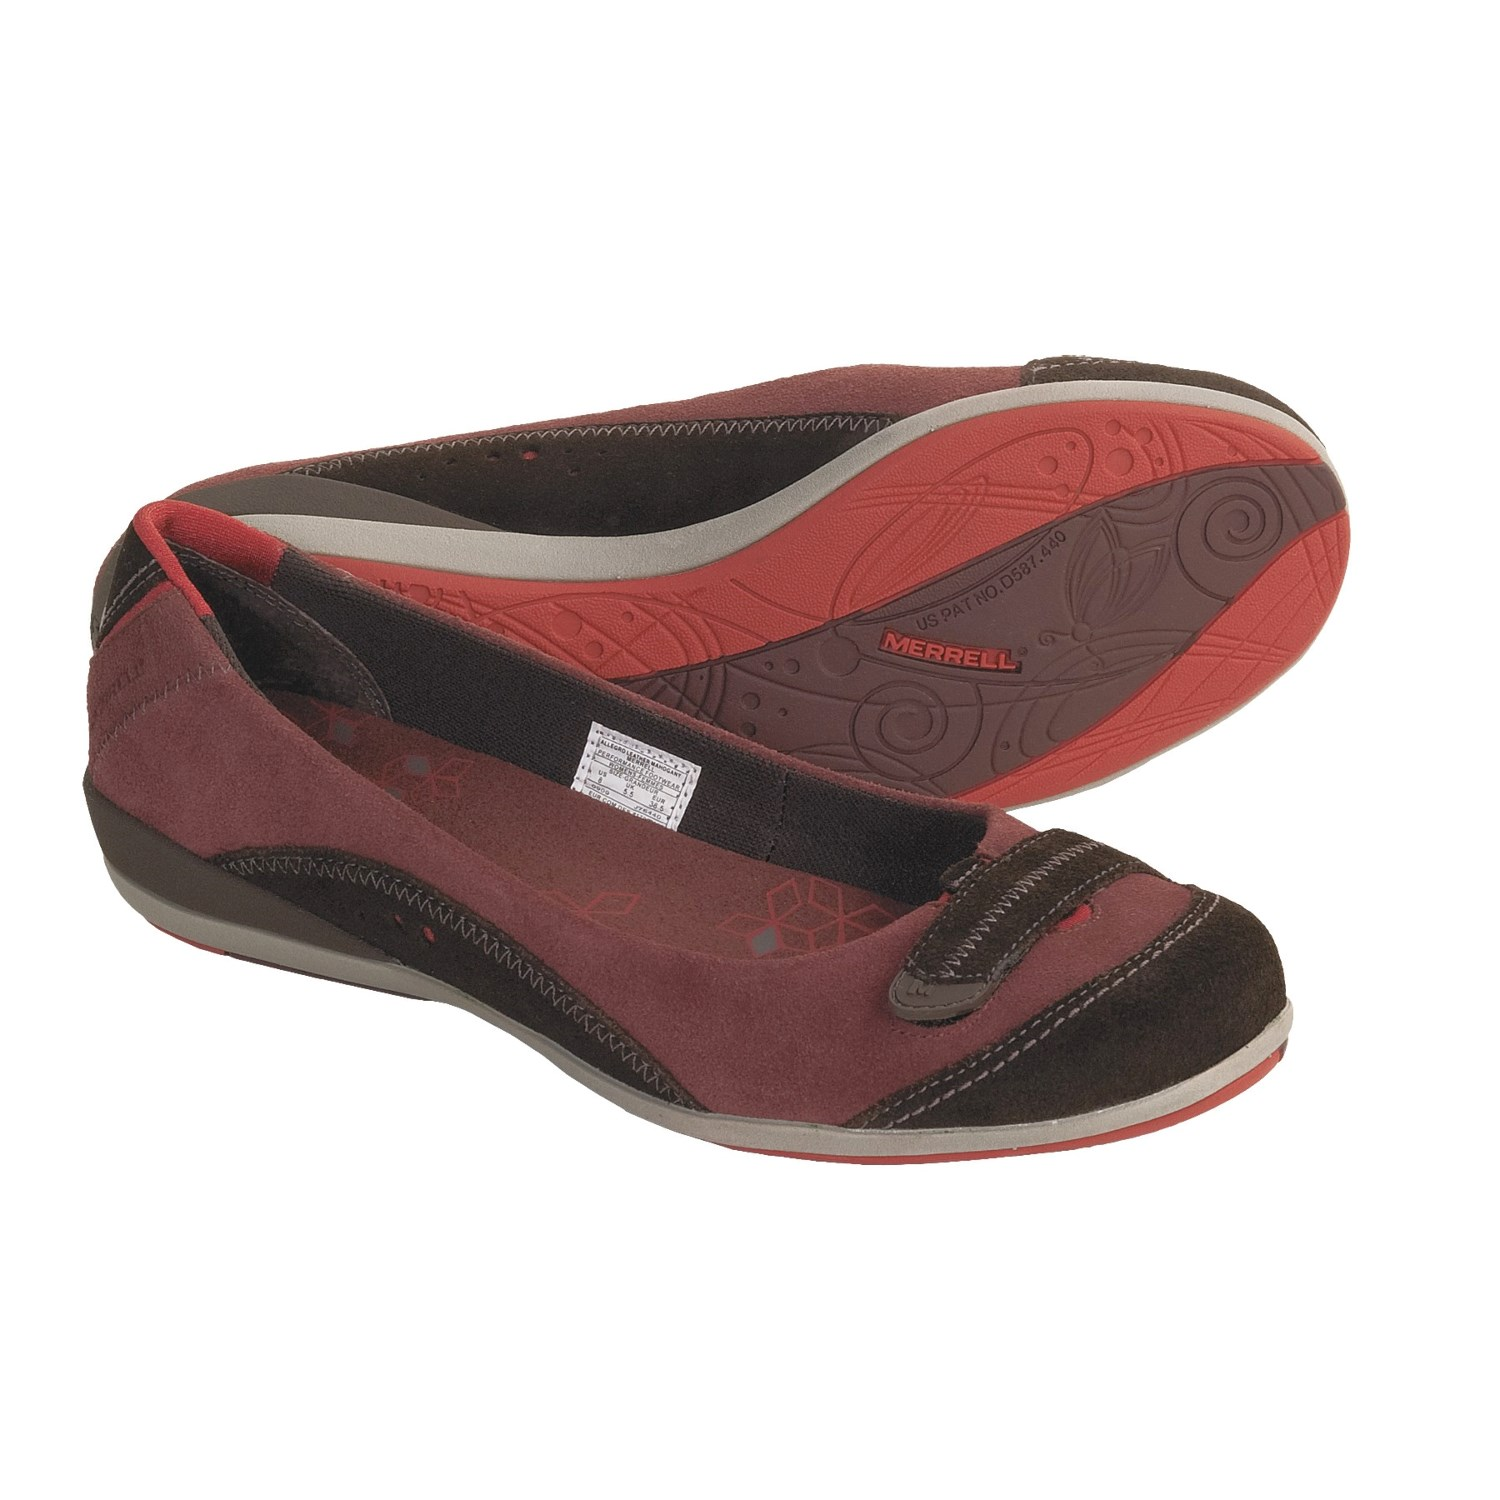 Merrell Allegro Leather Flats (For Women) 3023G - Save 30%